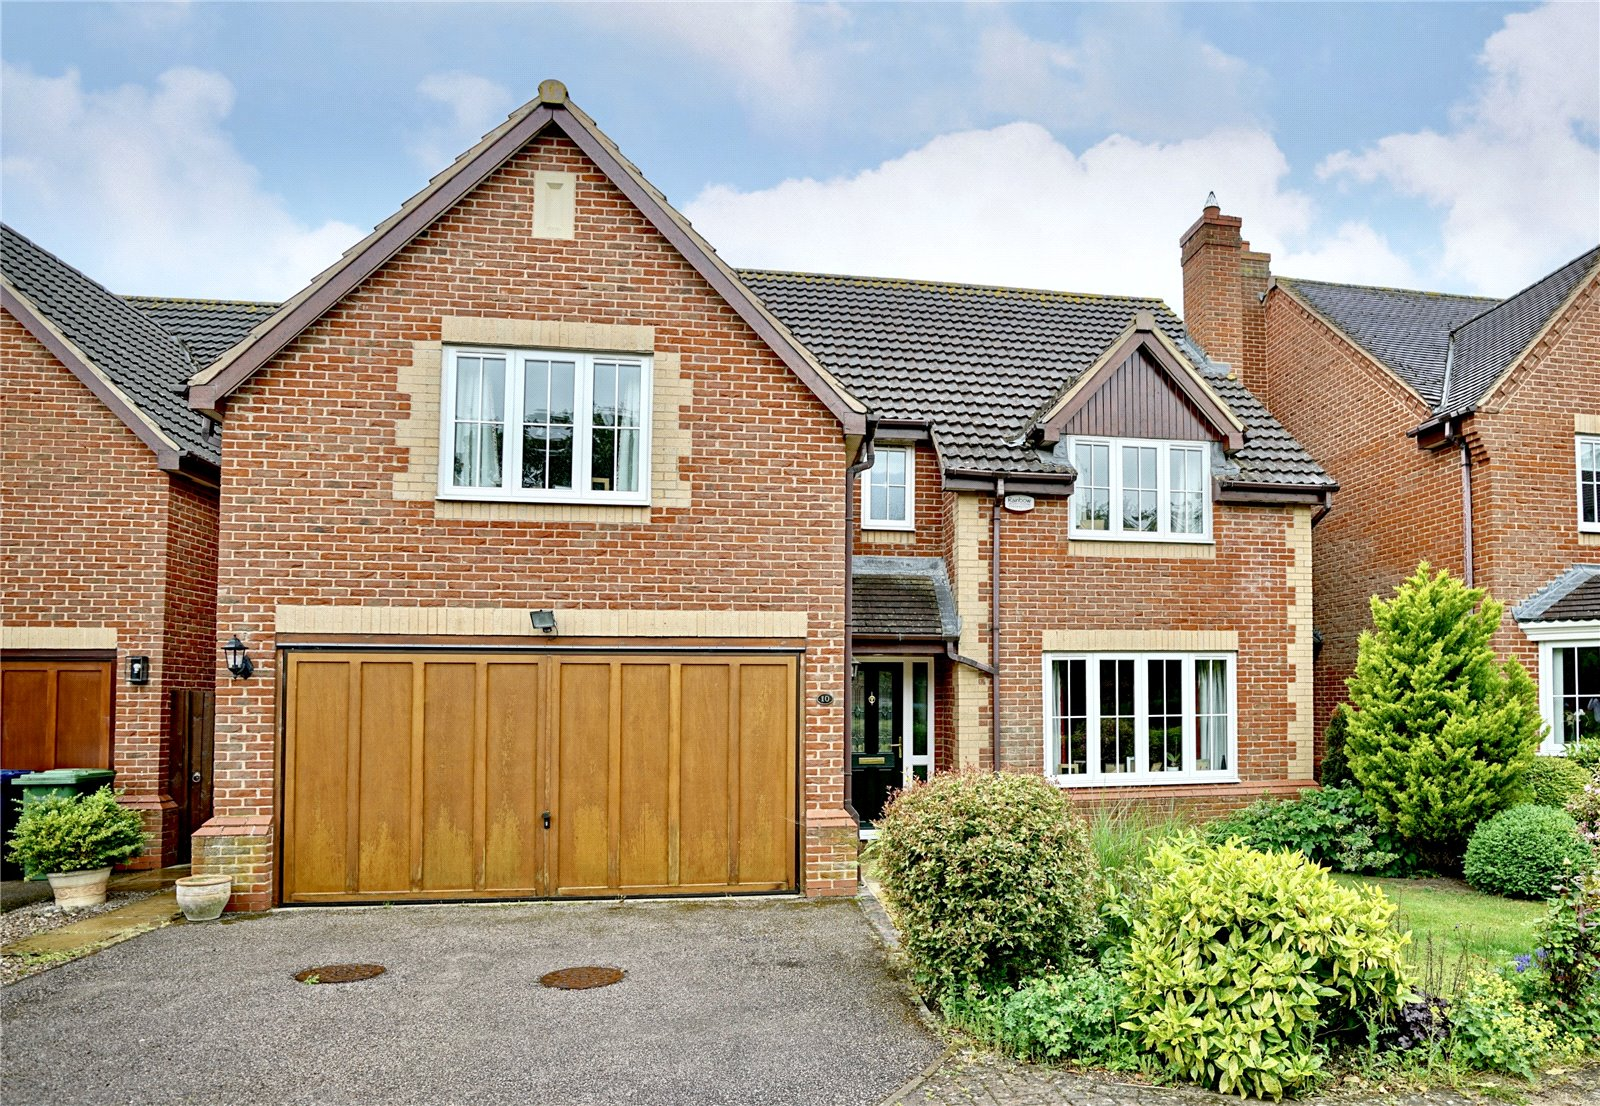 4 bed house for sale in Great Gransden - Property Image 1